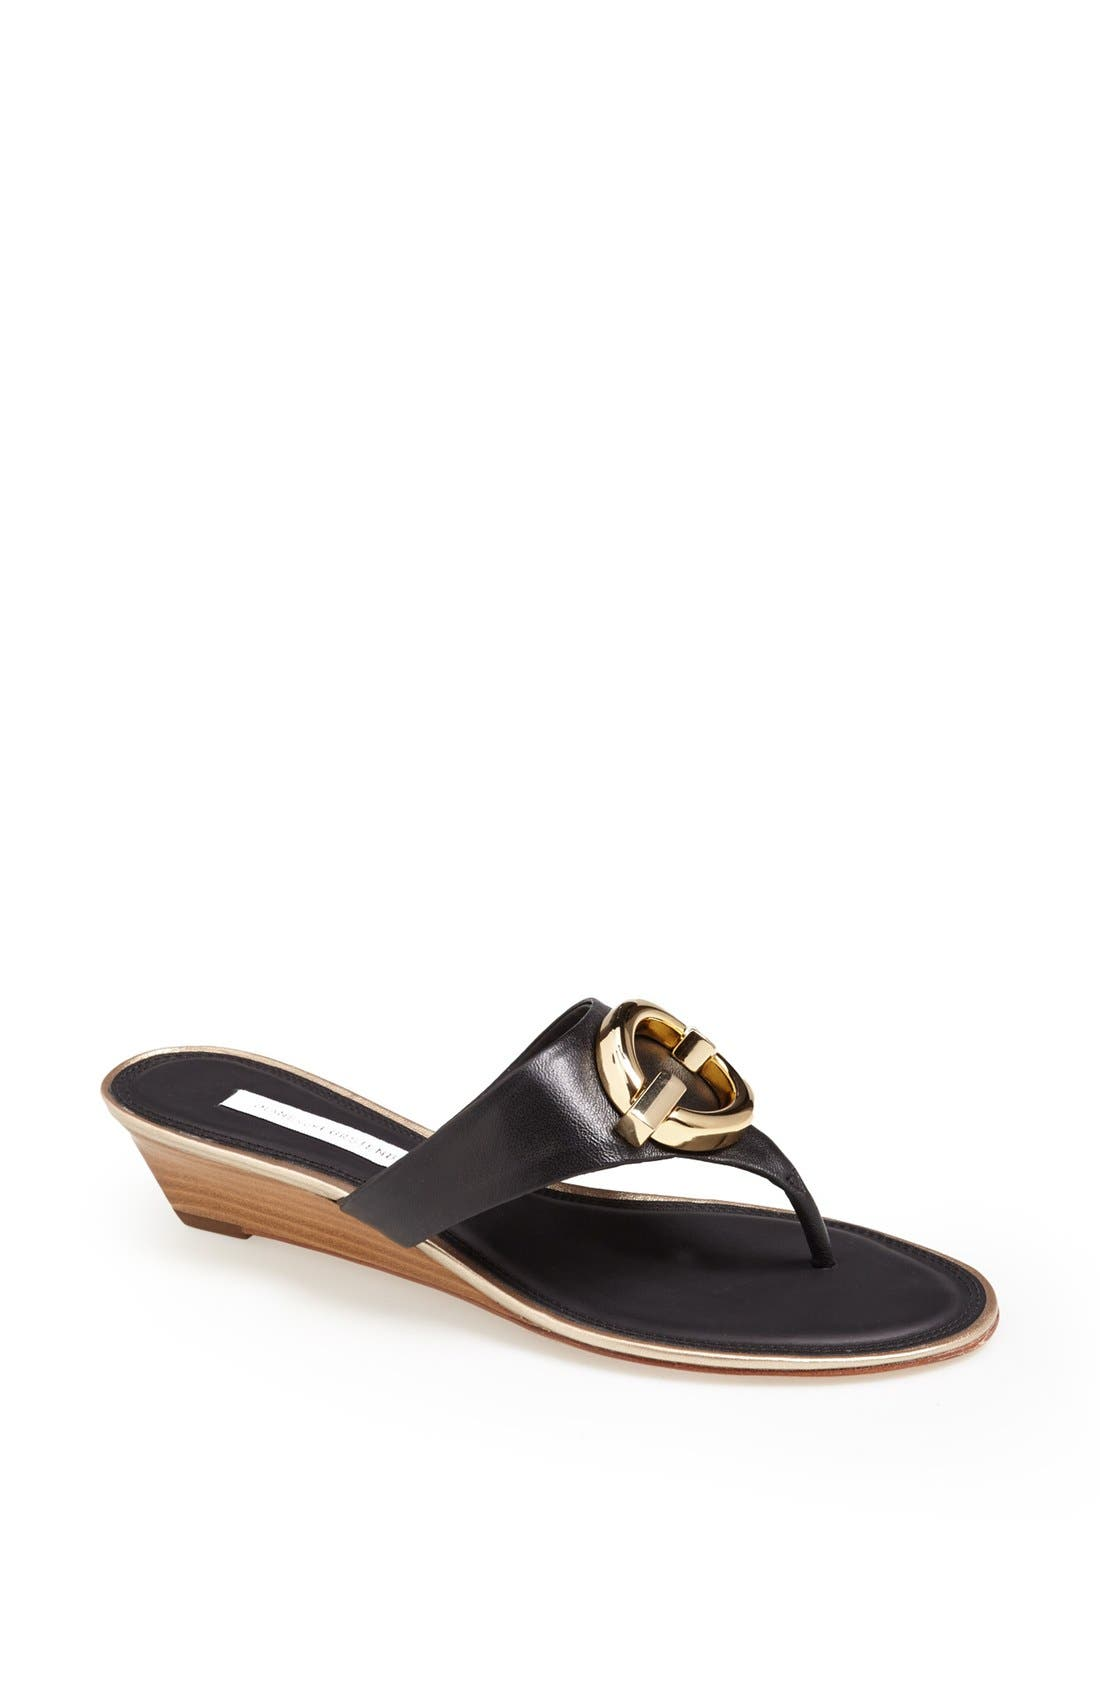 Main Image - Diane von Furstenberg 'Tiles' Leather Sandal